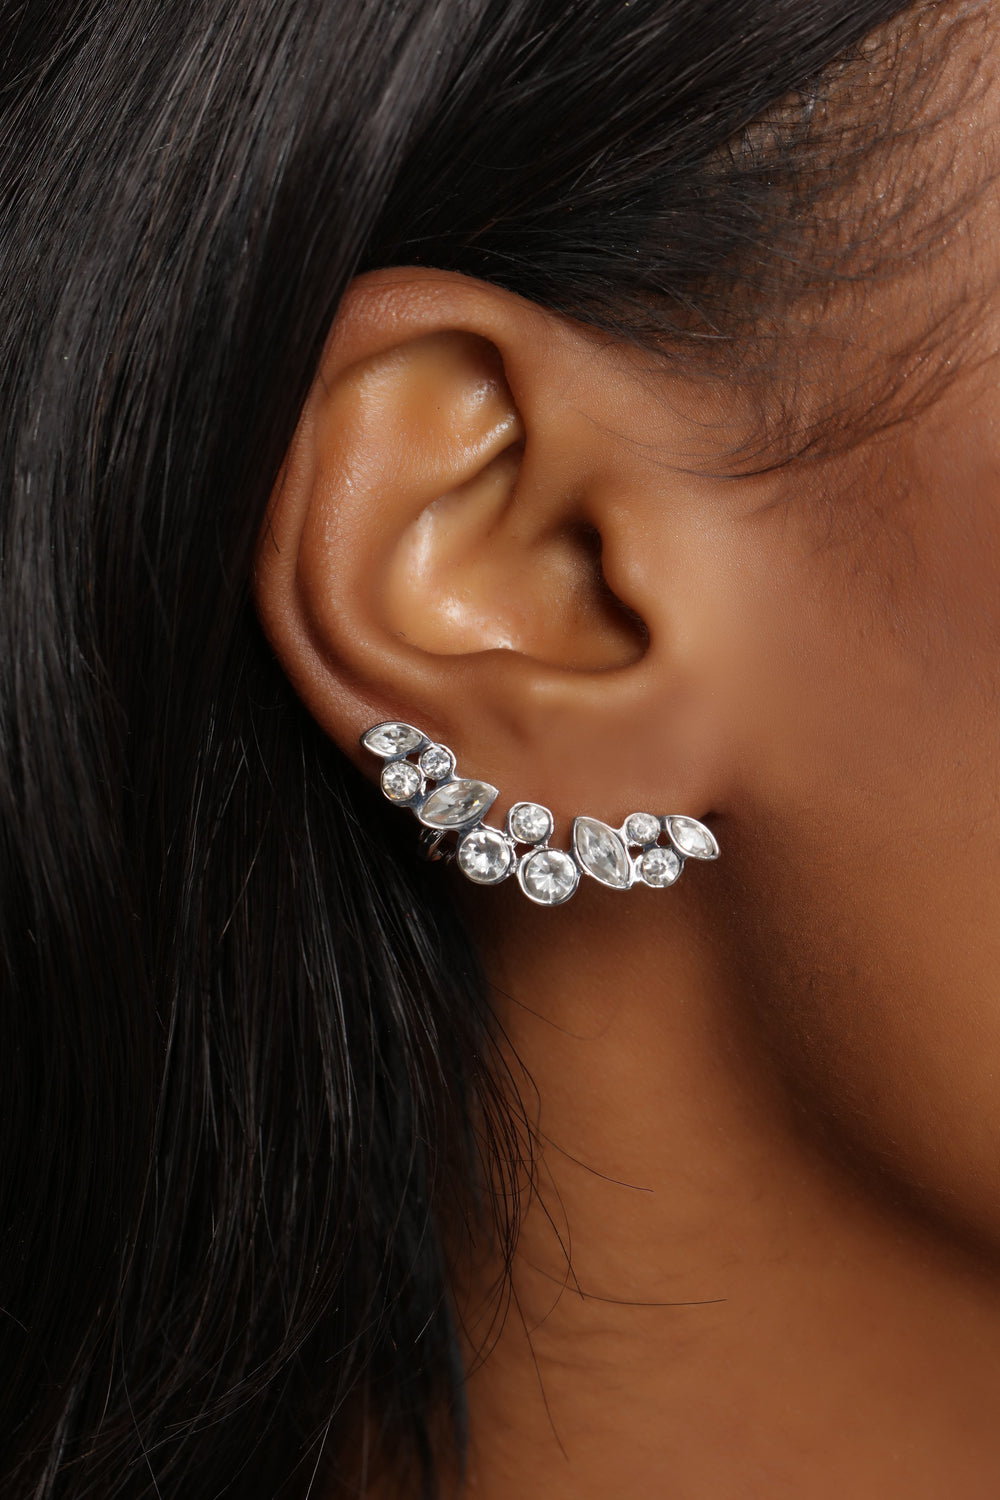 Are You Cuff Enough Earrings - Silver